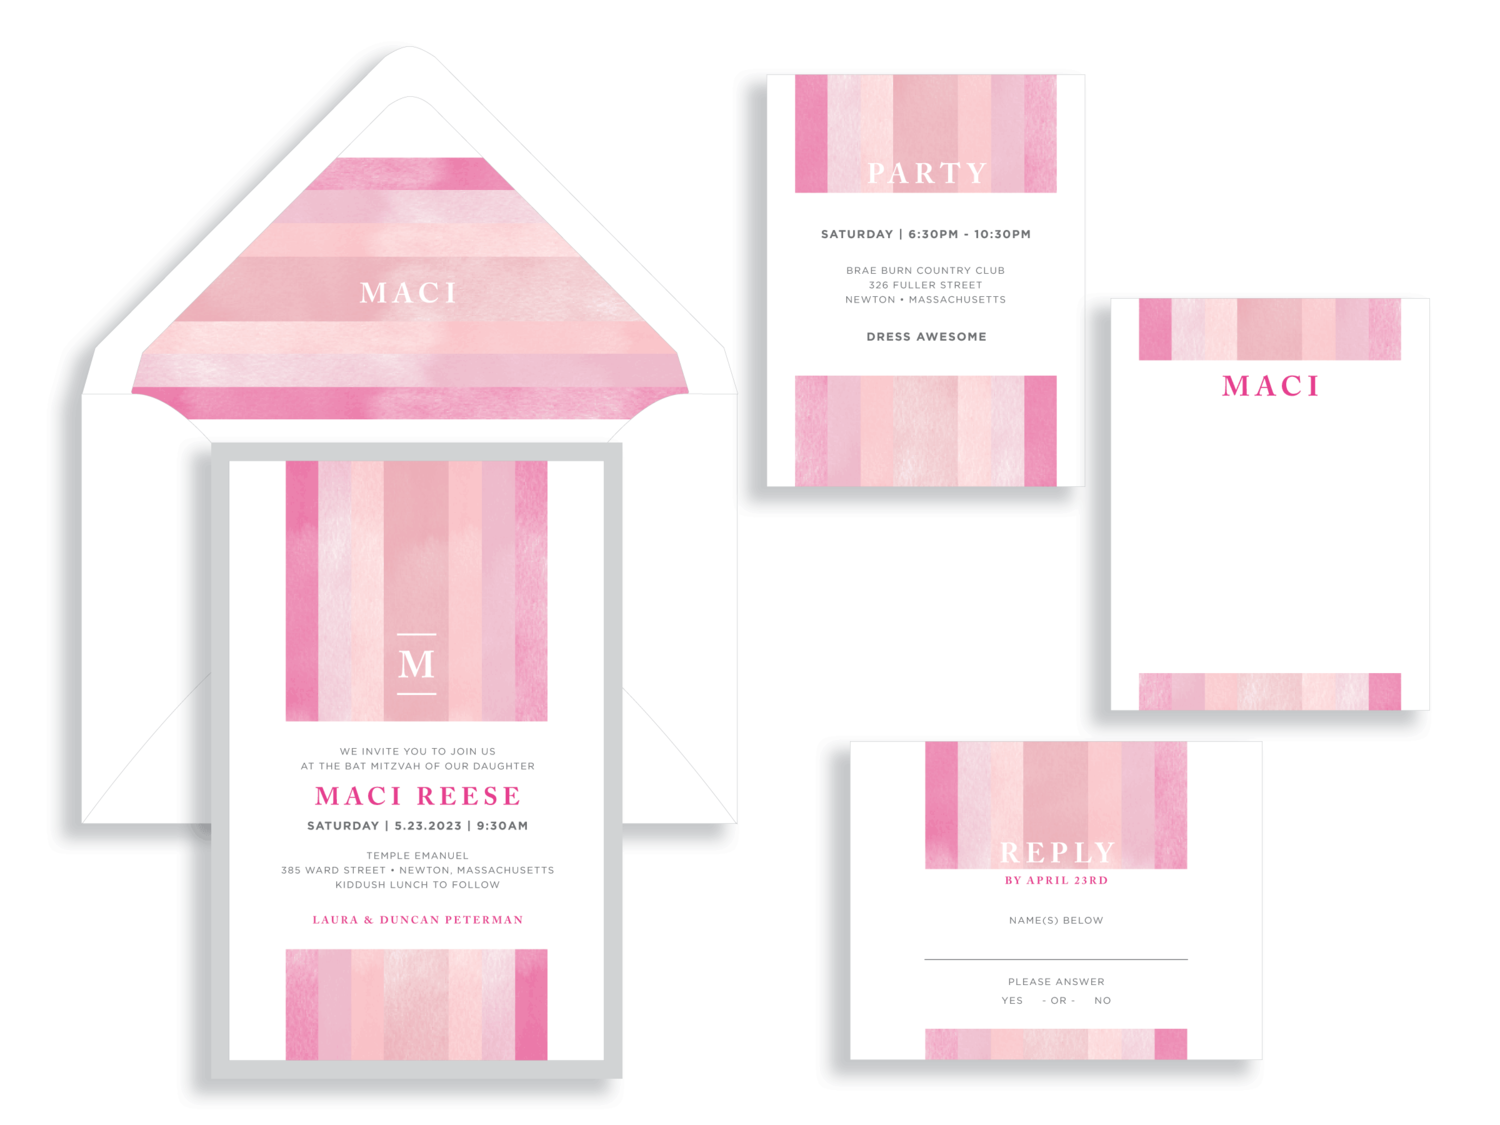 Maci Reece Bat Mitzvah invitation features stripes of pink and blush. Bat Mitzvah invitations by B.T. Elements are available in Northern VA at Staccato